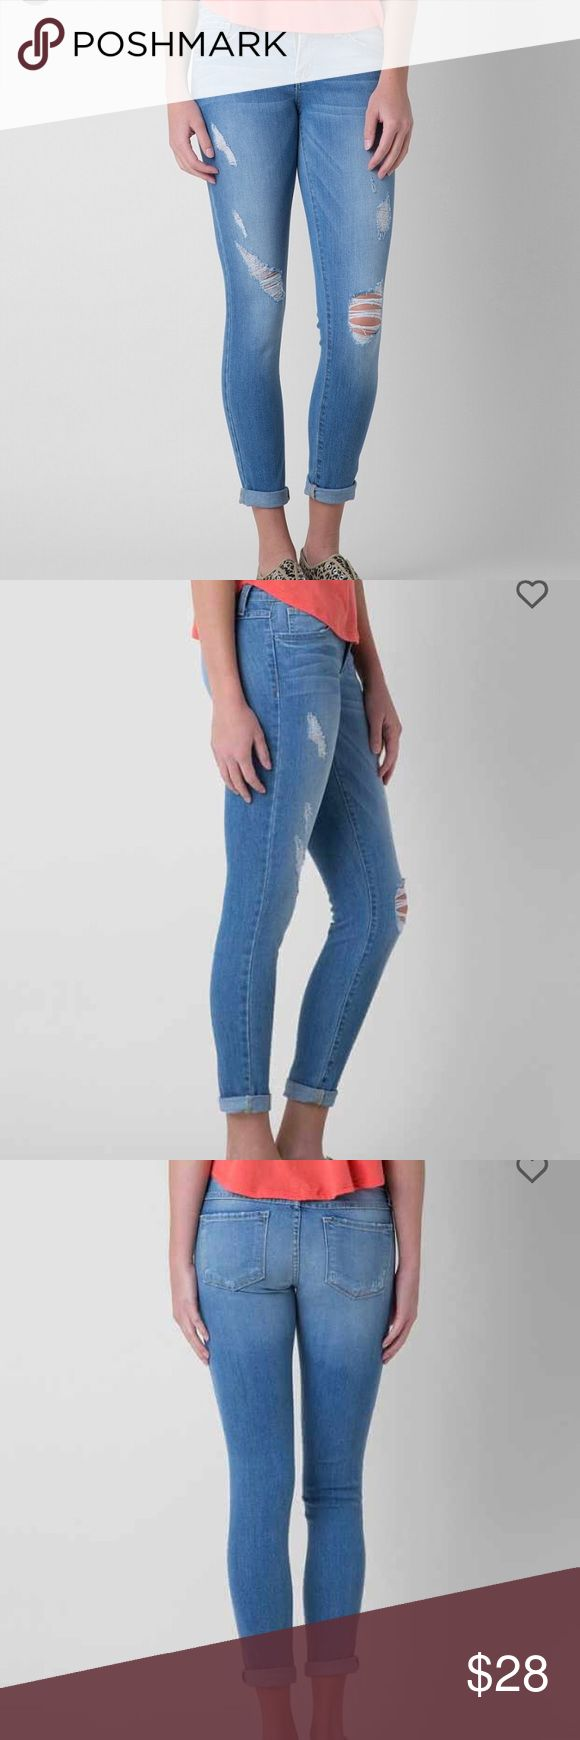 Flying Monkey low rise skinny stretch cropped jean Low rise skinny, light blue color.  Can be worn cuffed or uncuffed.  Size 28, fits true to size.  Pre-loved but good condition!  Tag: Buckle Flying Monkey Jeans Skinny